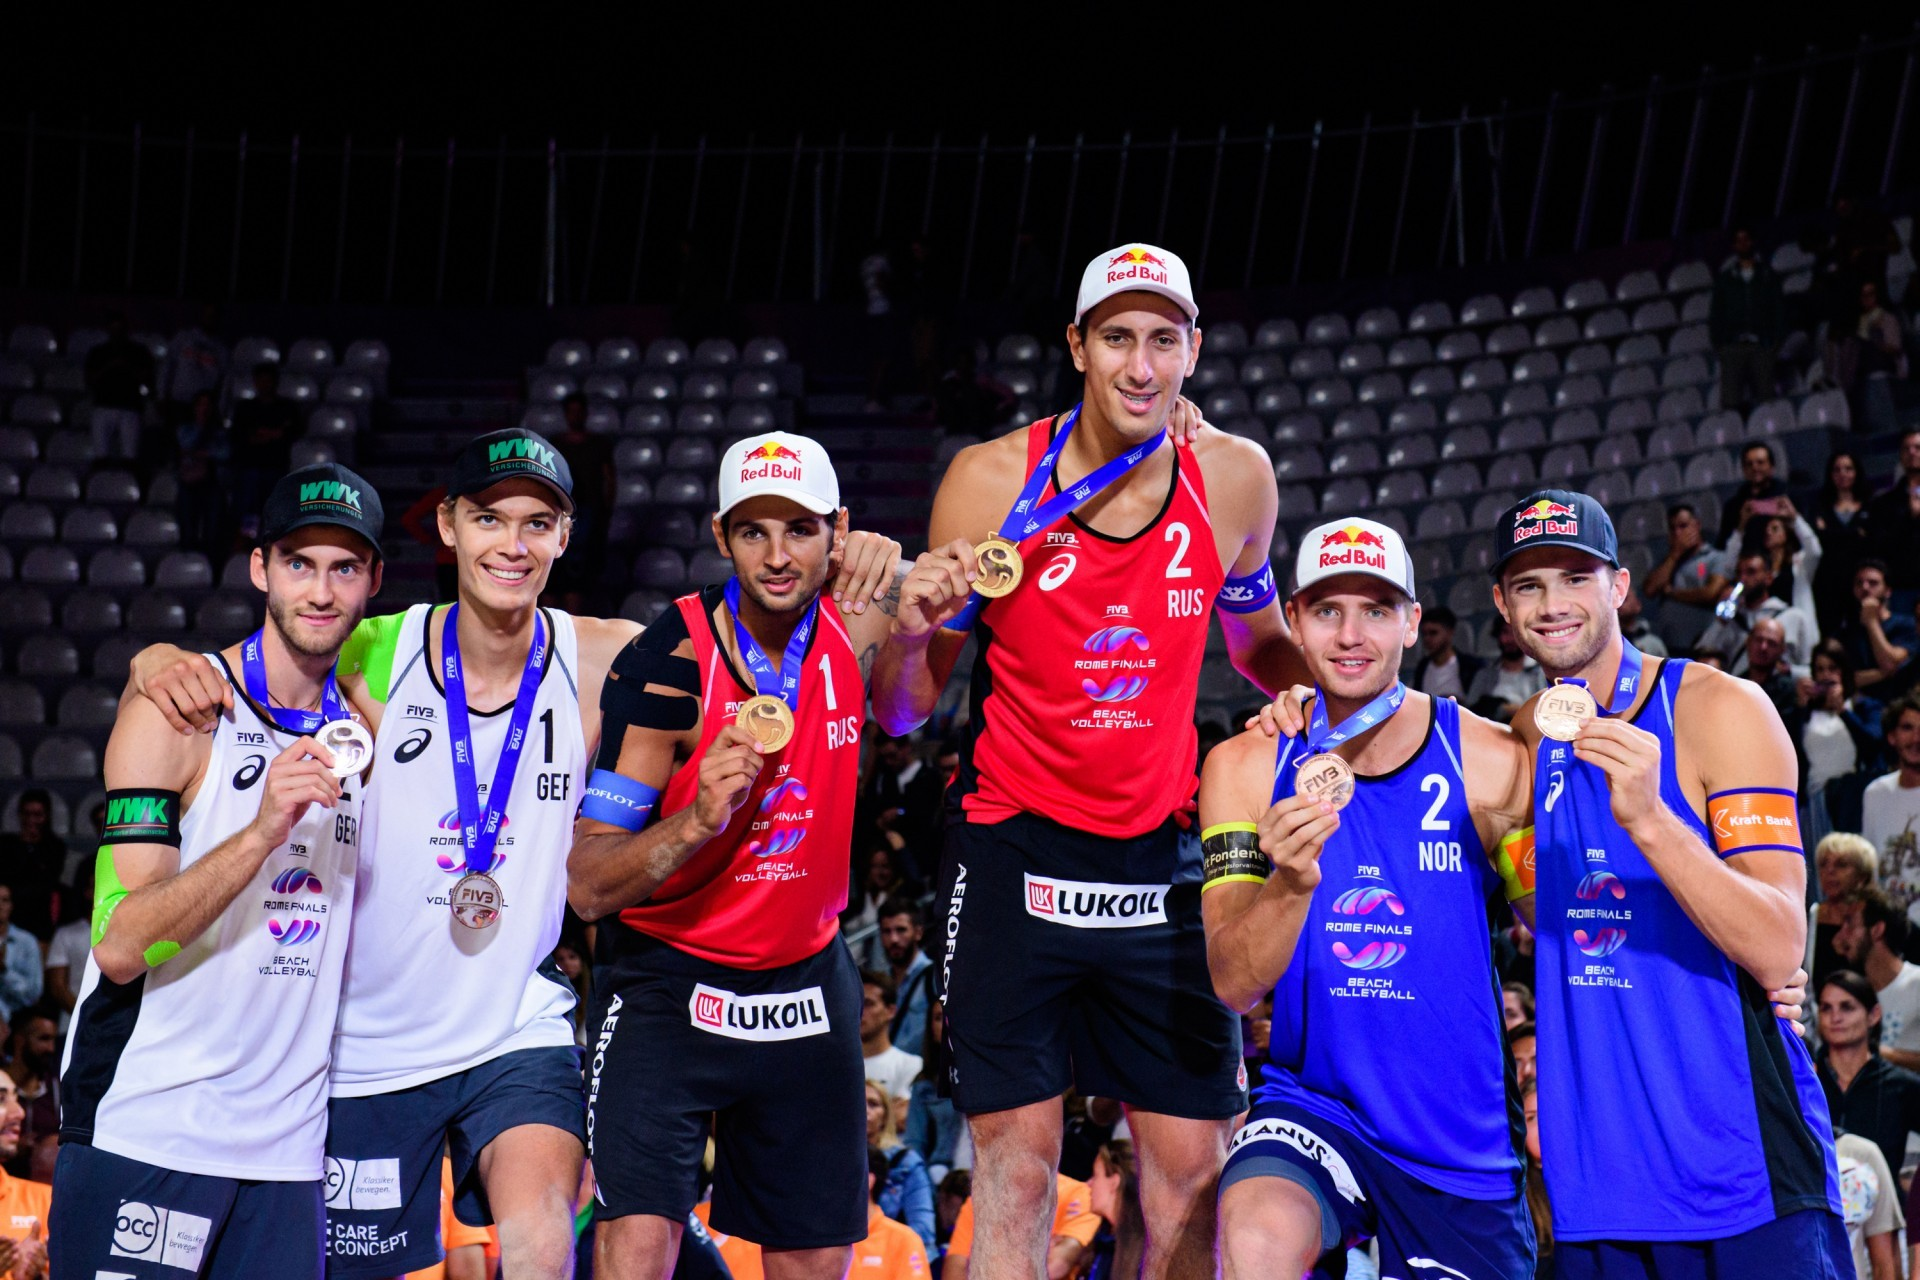 The medalists of the World Tour Finals were the same ones of the World Championships (Photocredit: FIVB)